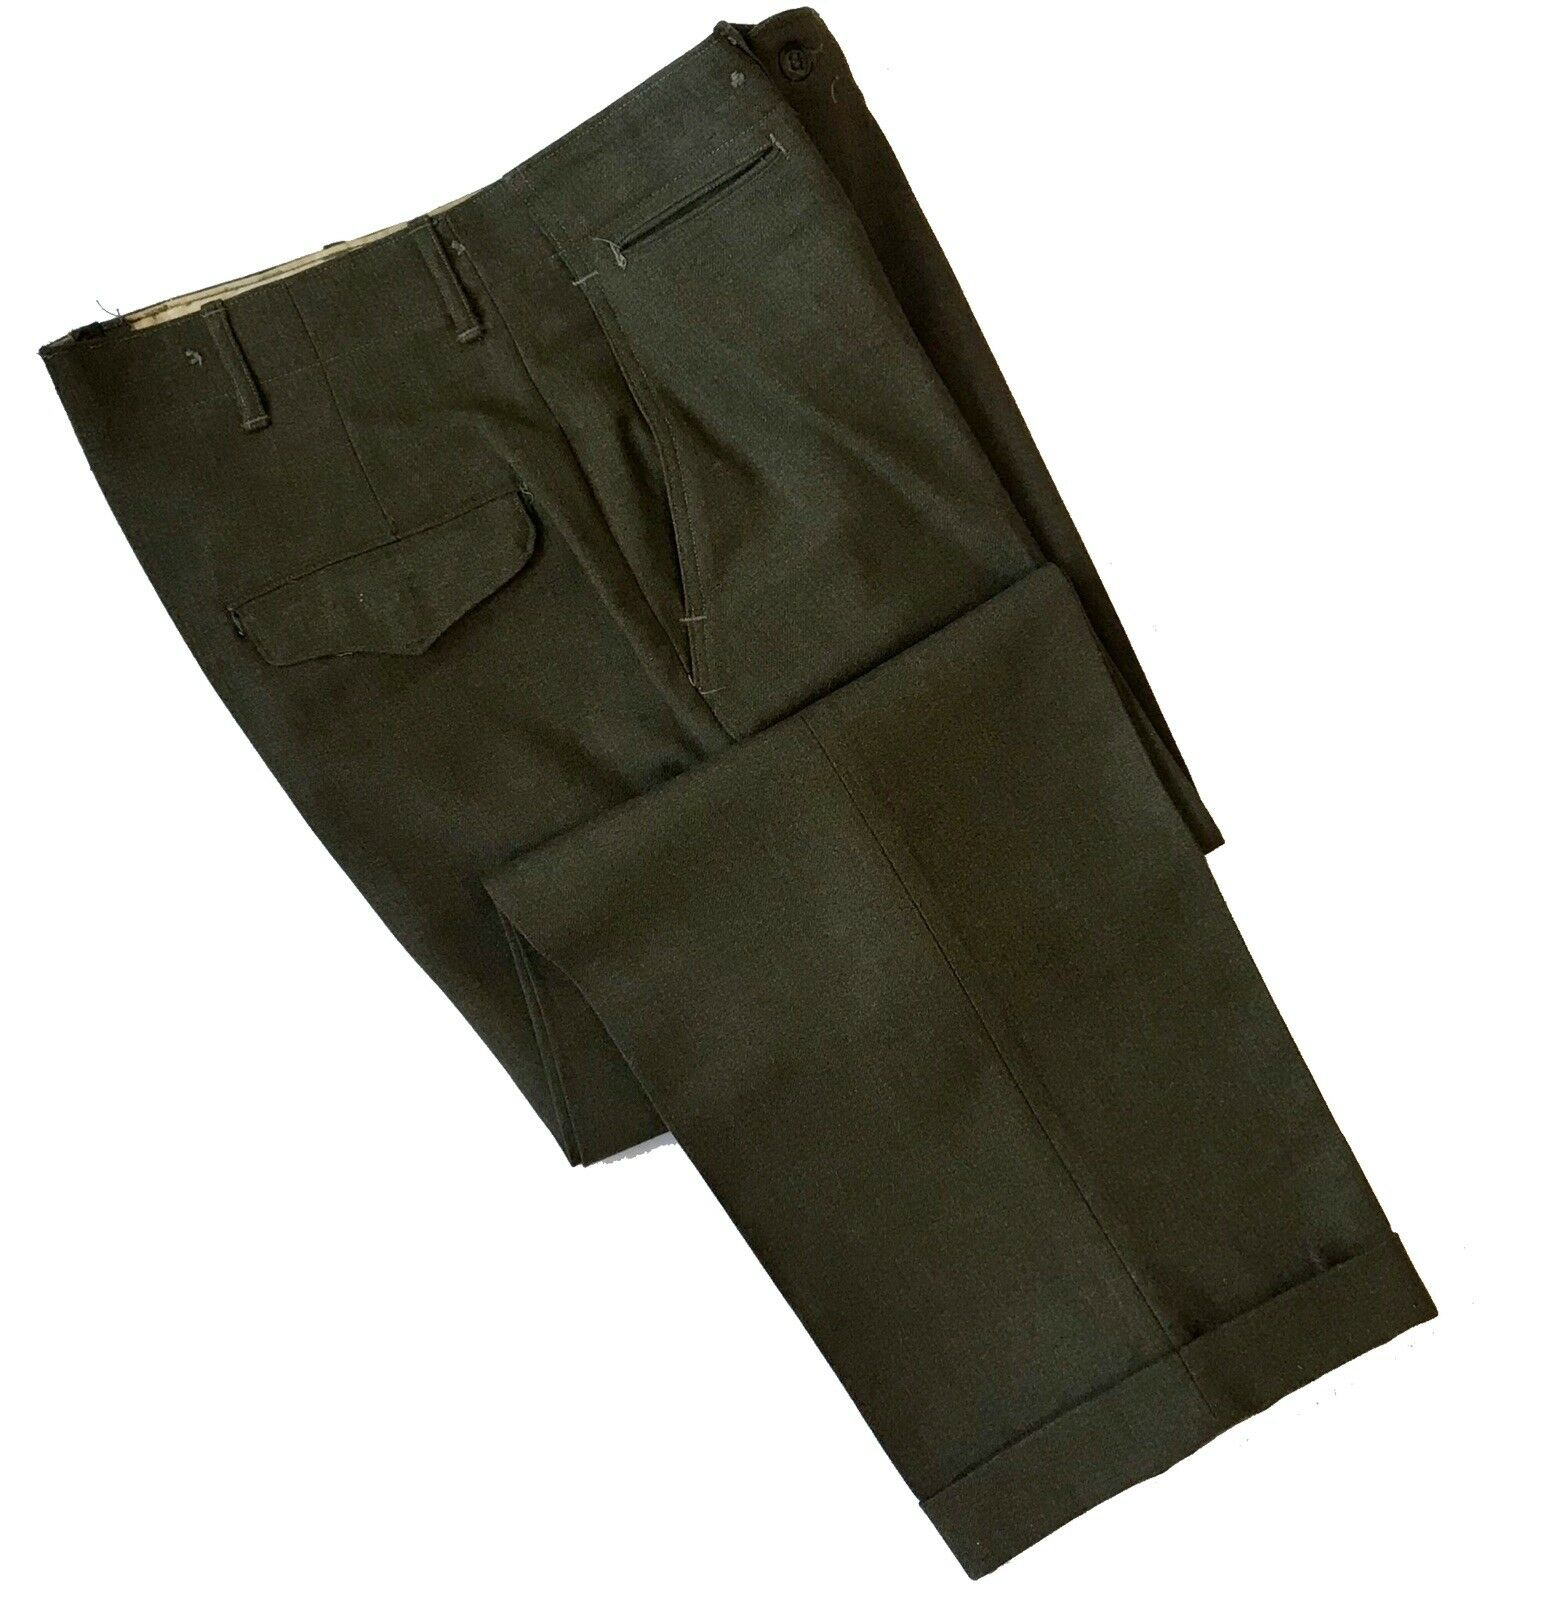 Vintage Military Utility Pants 5 Button 100% Wool Army Green Size W 31 x L 33